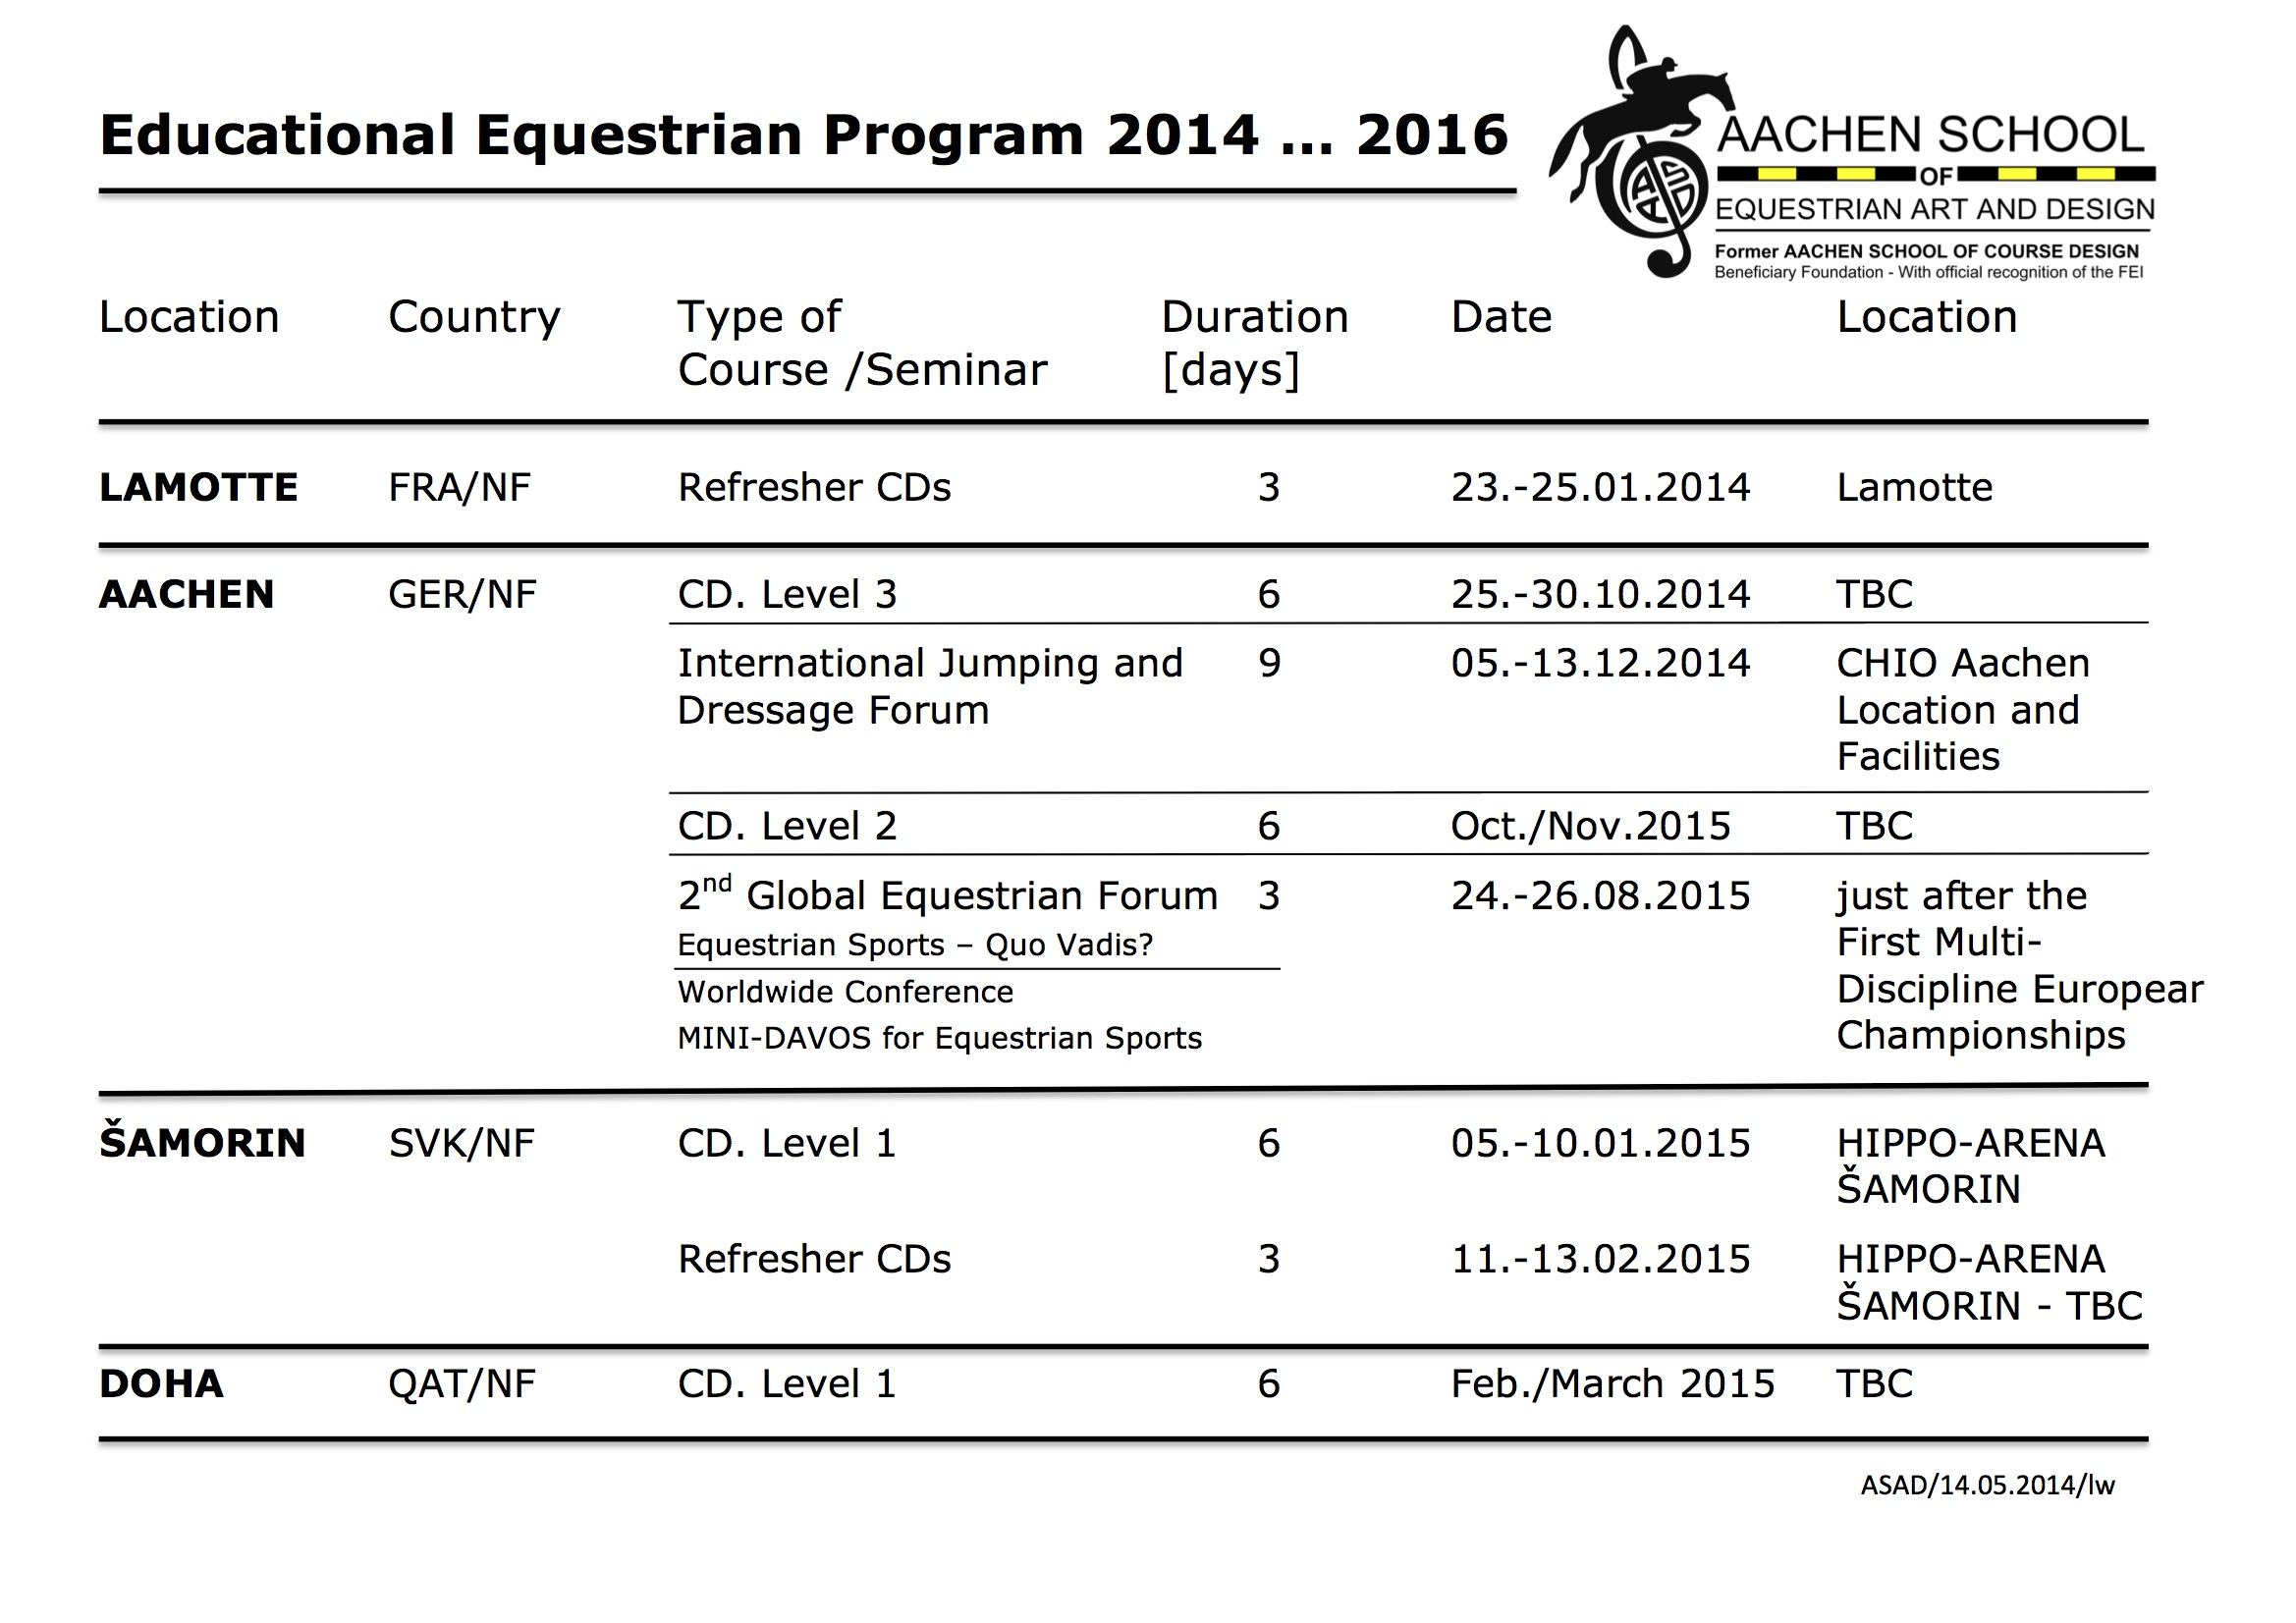 Educational Equestrian Program 2014-2016 02052014